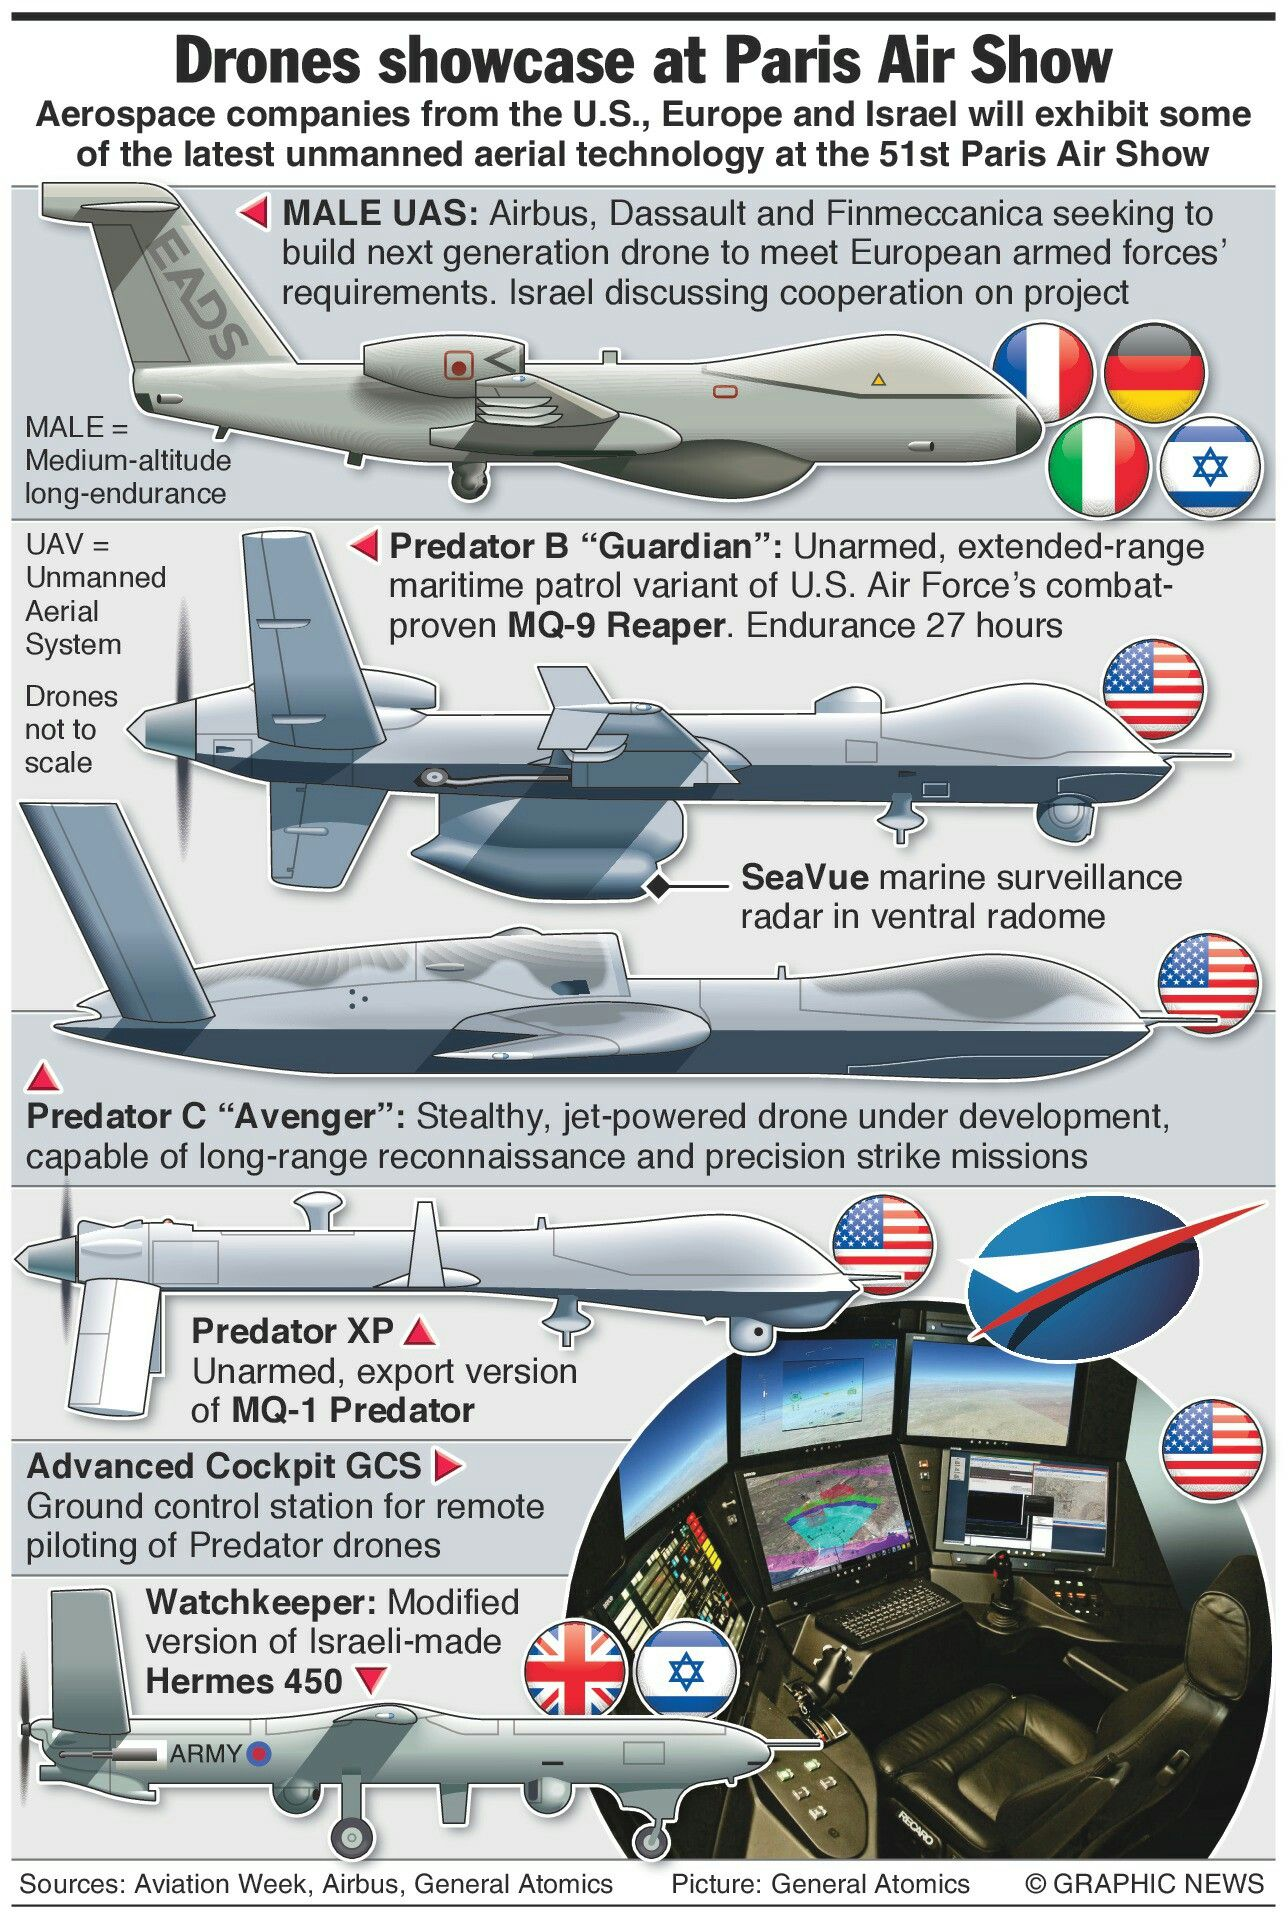 Pin by radialv on Military Infographic   Pinterest